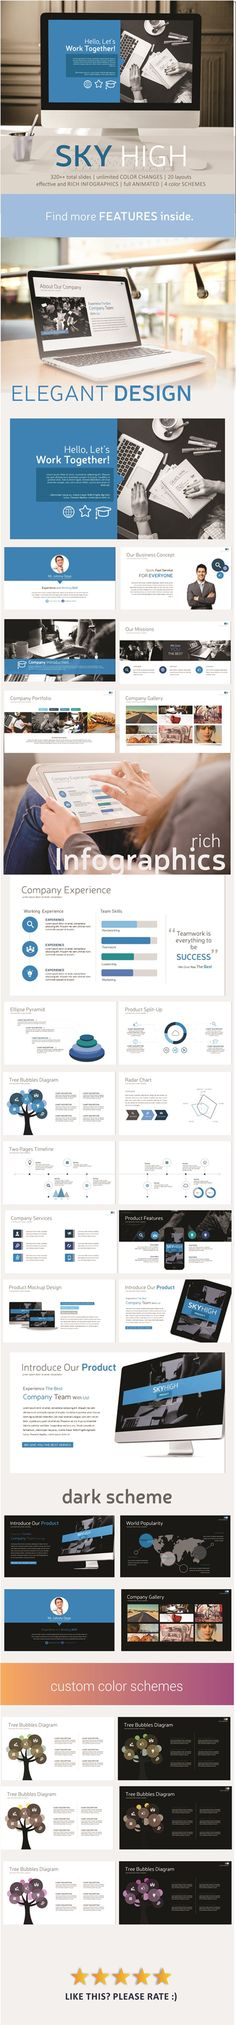 Sky High PowerPoint Template #powerpoint #powerpointtemplate #presentation Download: http://graphicriver.net/item/sky-high-powerpoint-template/11944749?ref=ksioks